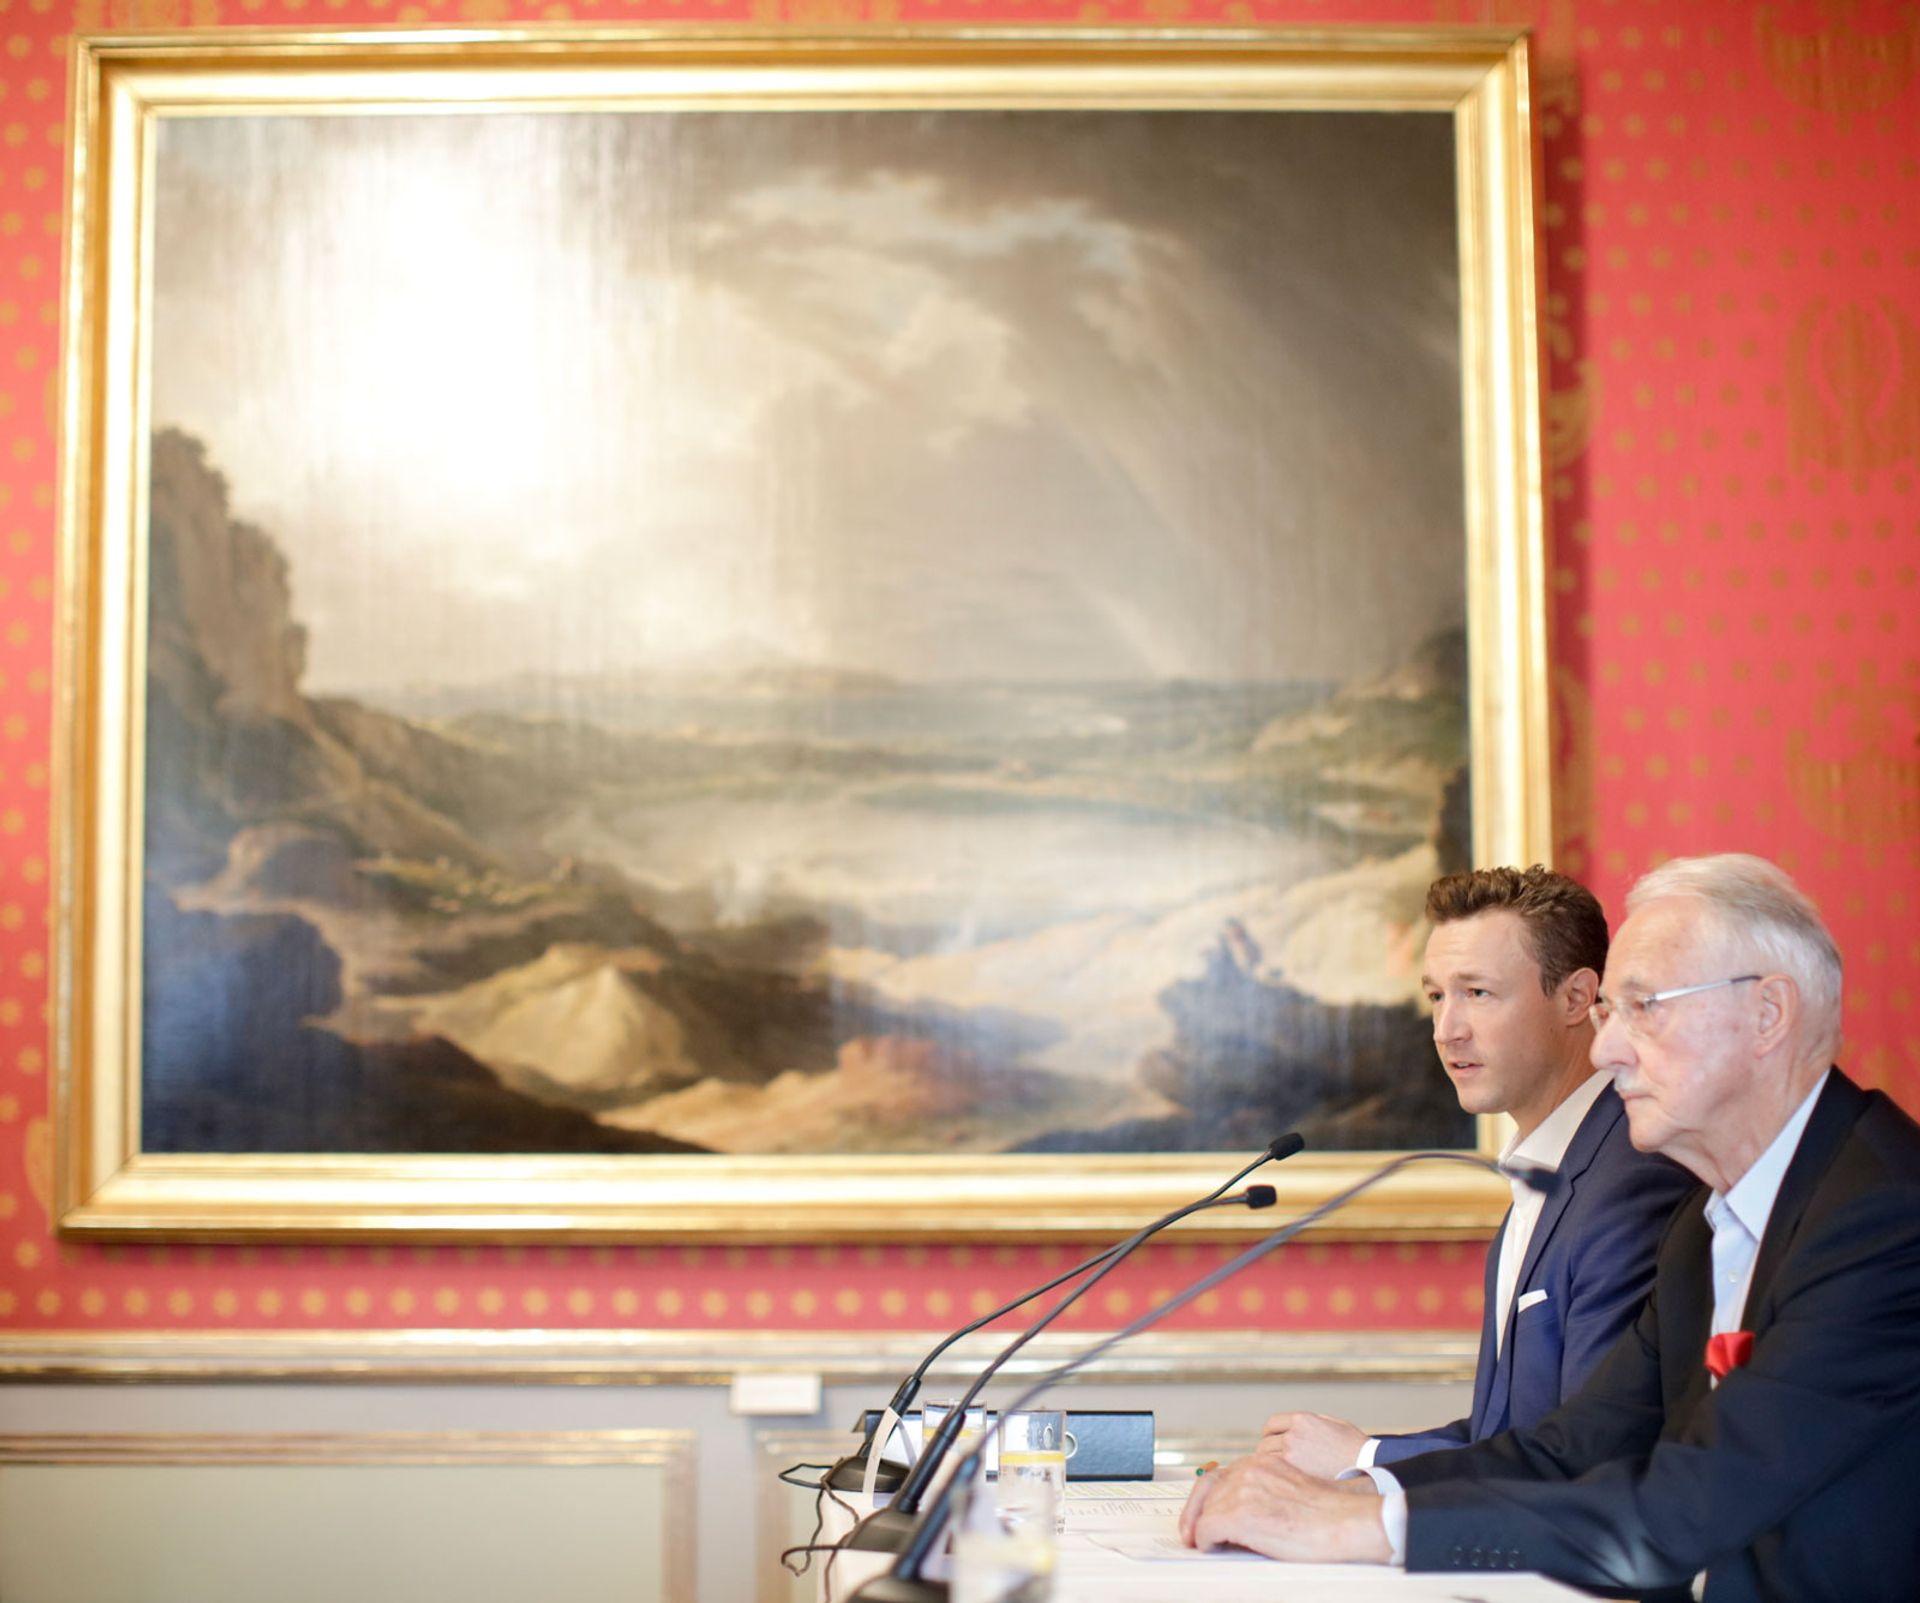 Karlheinz Essl, founder of the Baumax chain of DIY shops, and Austria's culture minister Gernot Blümel at the press conference at the Albertina BKA/ Andy Wenzel